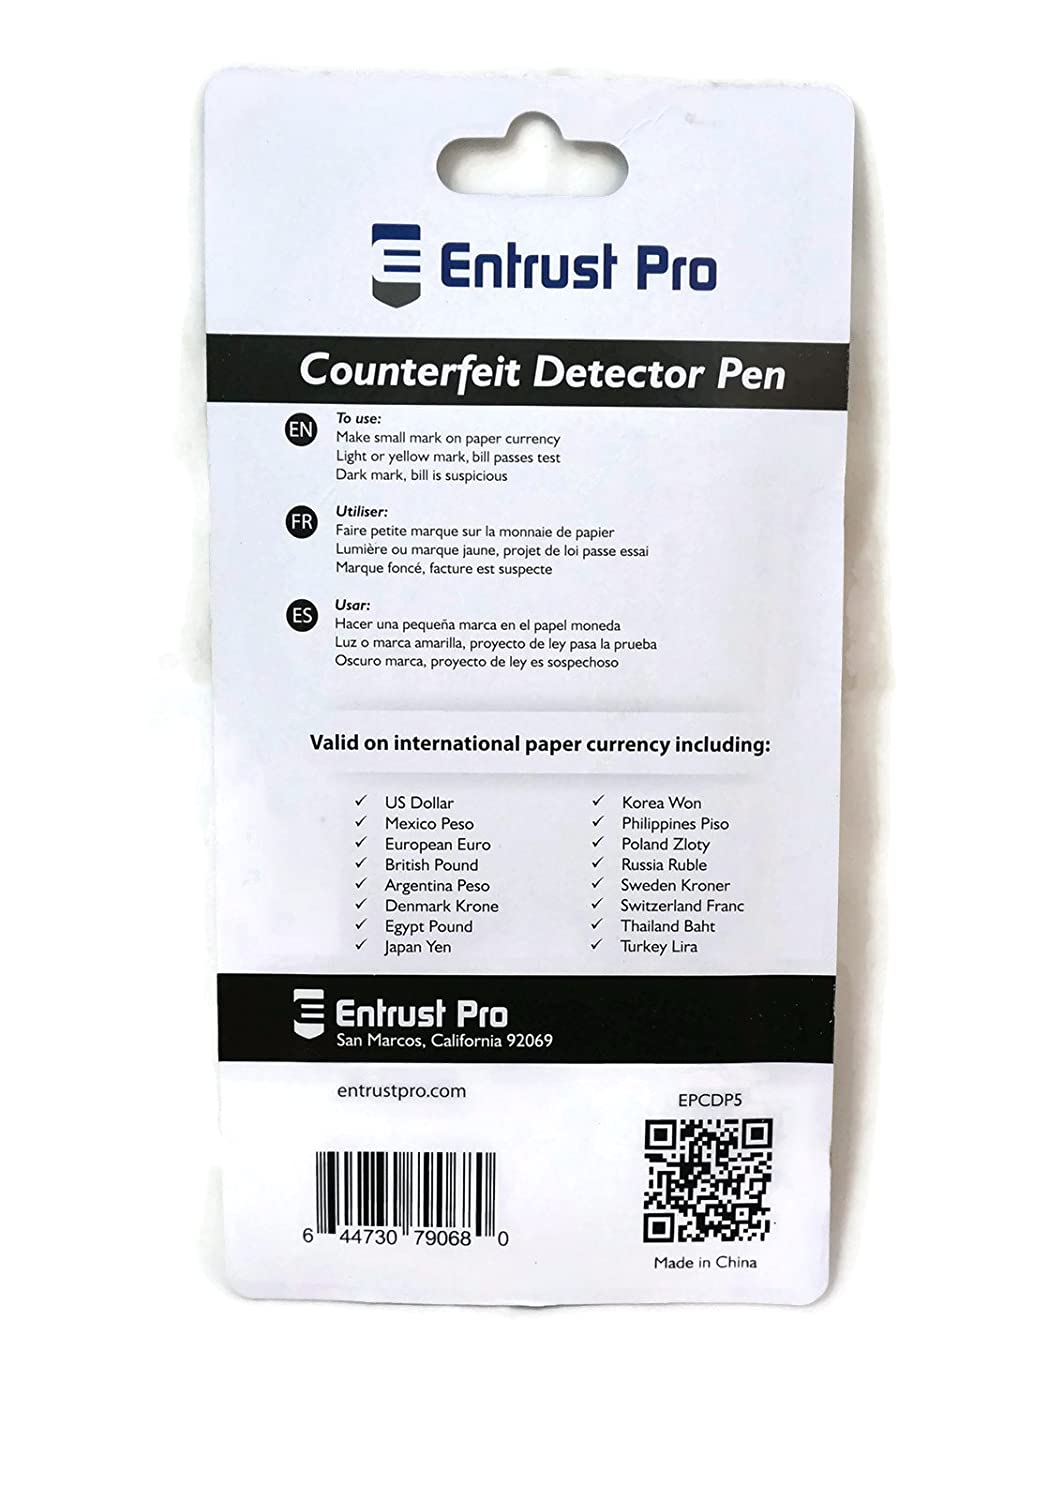 Amazon.com : Entrust Pro Counterfeit Money Detector Pen Marker (5-Pack), Dollars, Pesos, Euros, Pounds and Other Paper Bill Currencies : Office Products